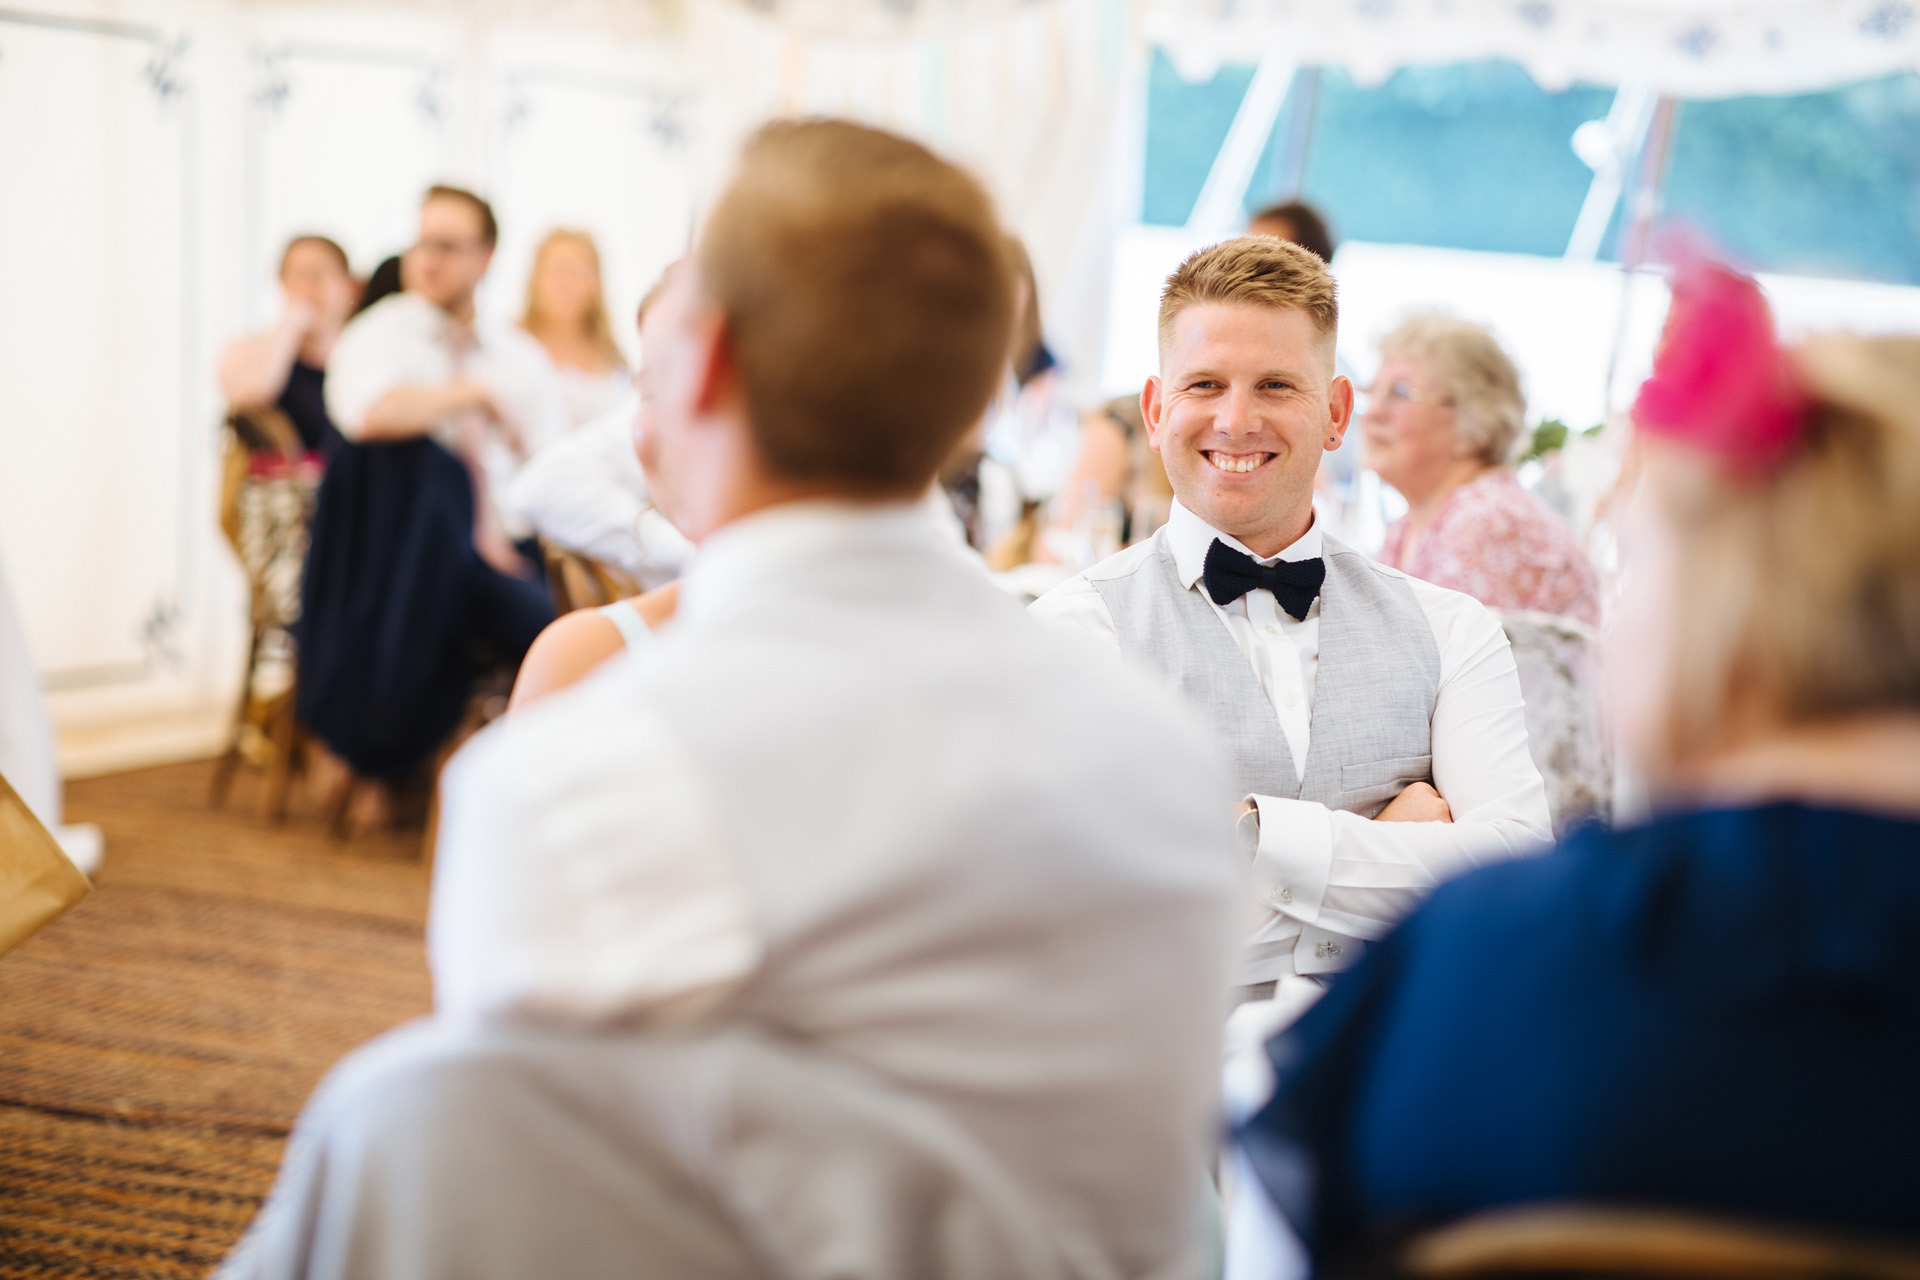 groomsman in a bow tie smiling at speech